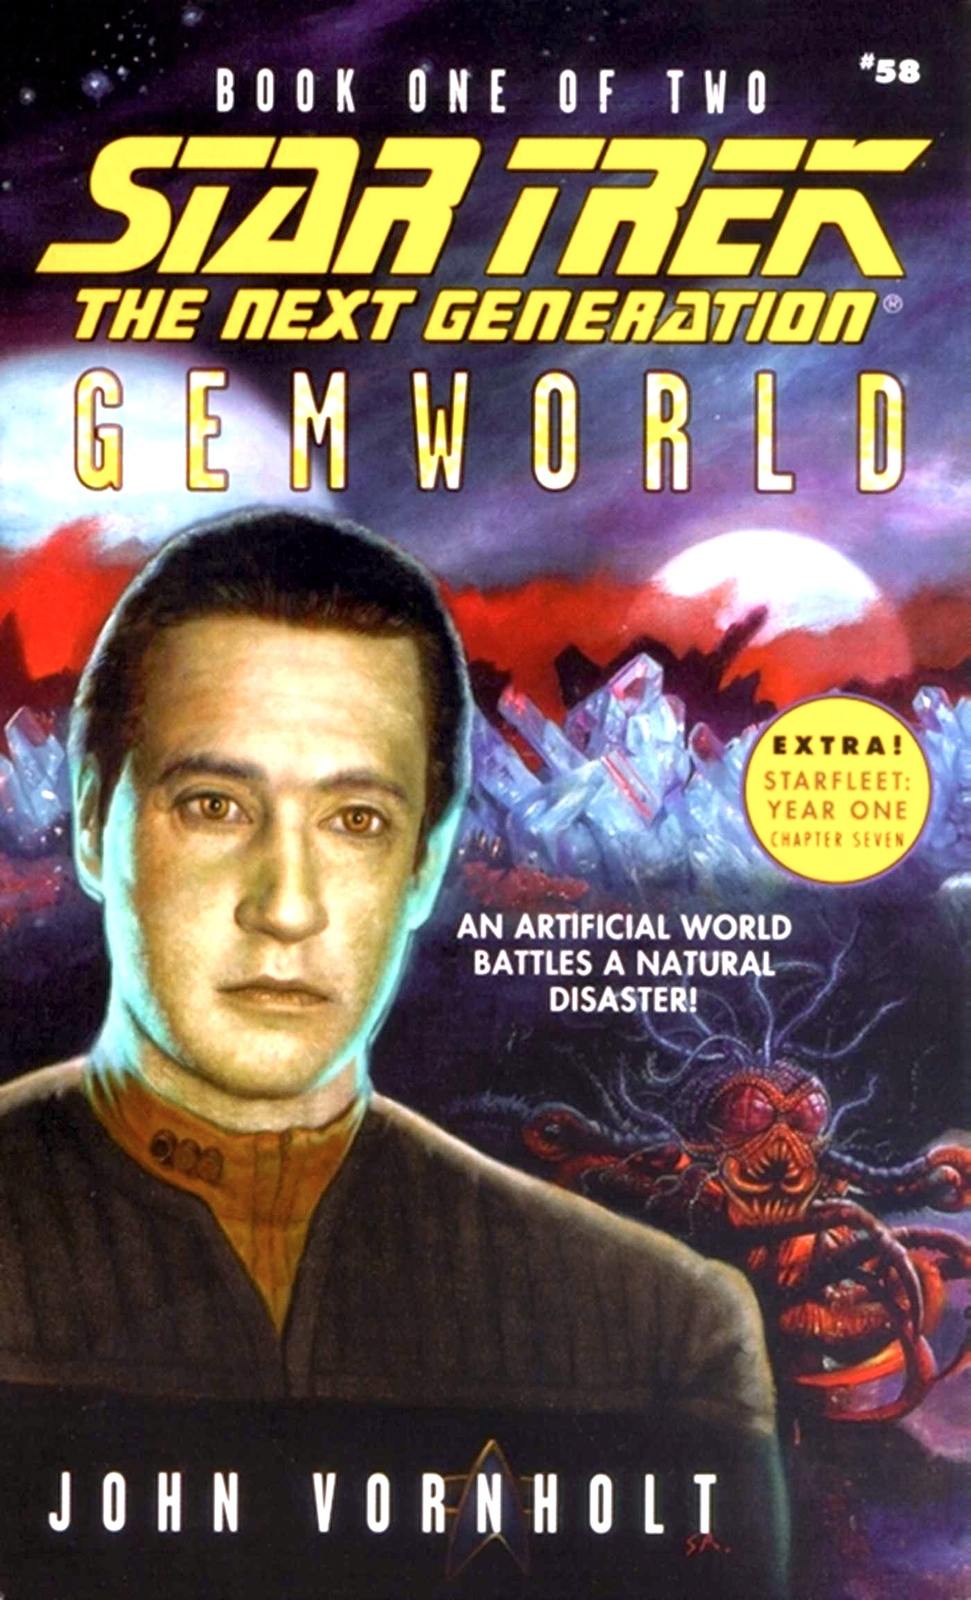 Gemworld, Book One of Two